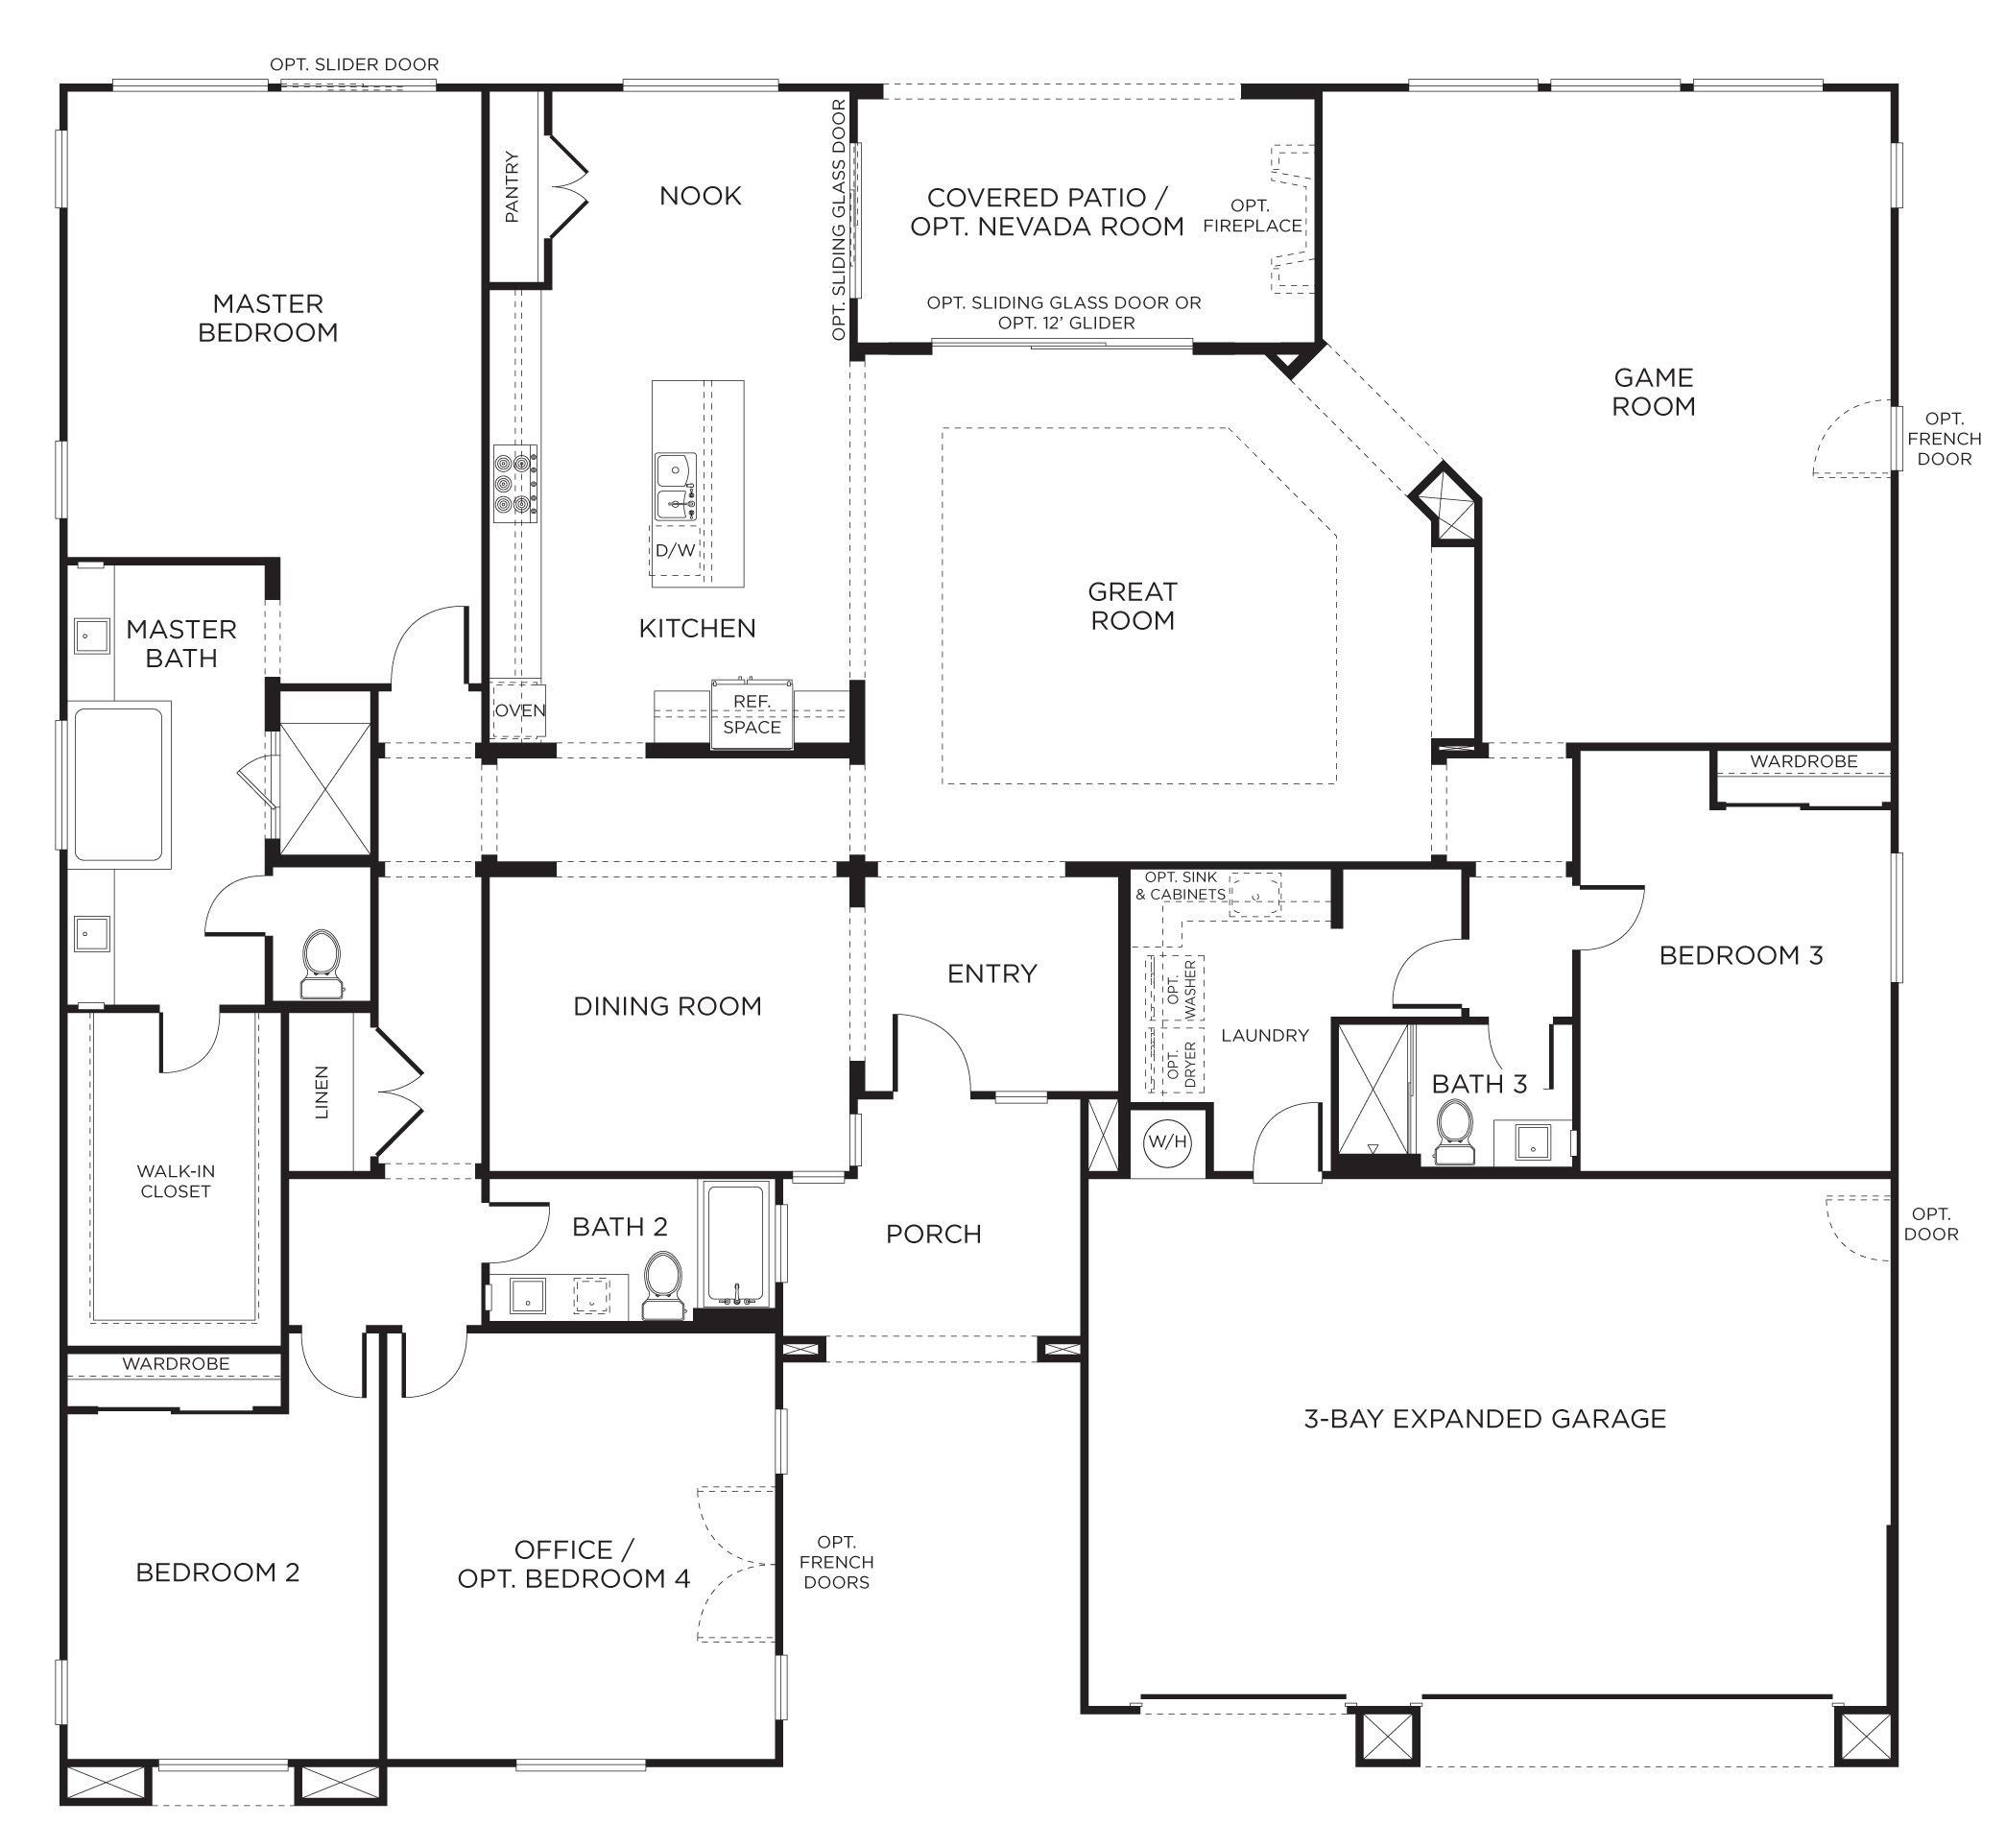 Floorplan 2 3 4 bedrooms 3 bathrooms 3400 square feet House plans 2500 sq ft one story